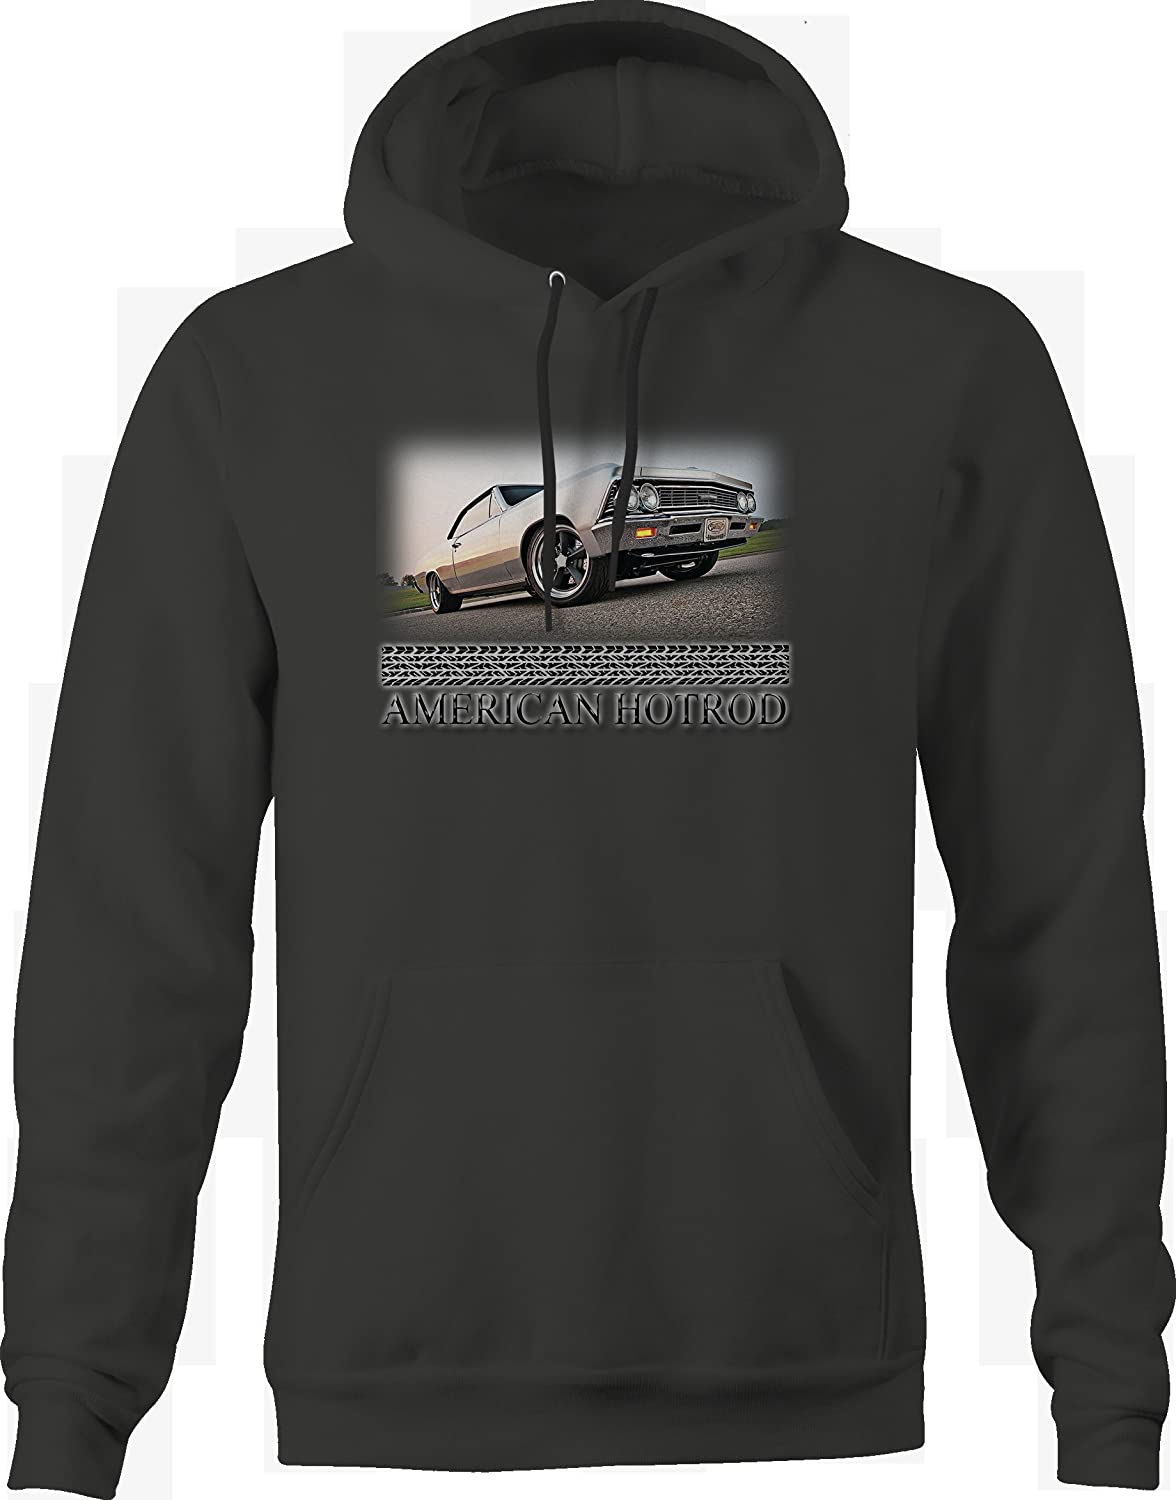 Bold Imprints American Hotrod Muscle Car Muscle Car V8 Restored Graphic Hoodie for Men